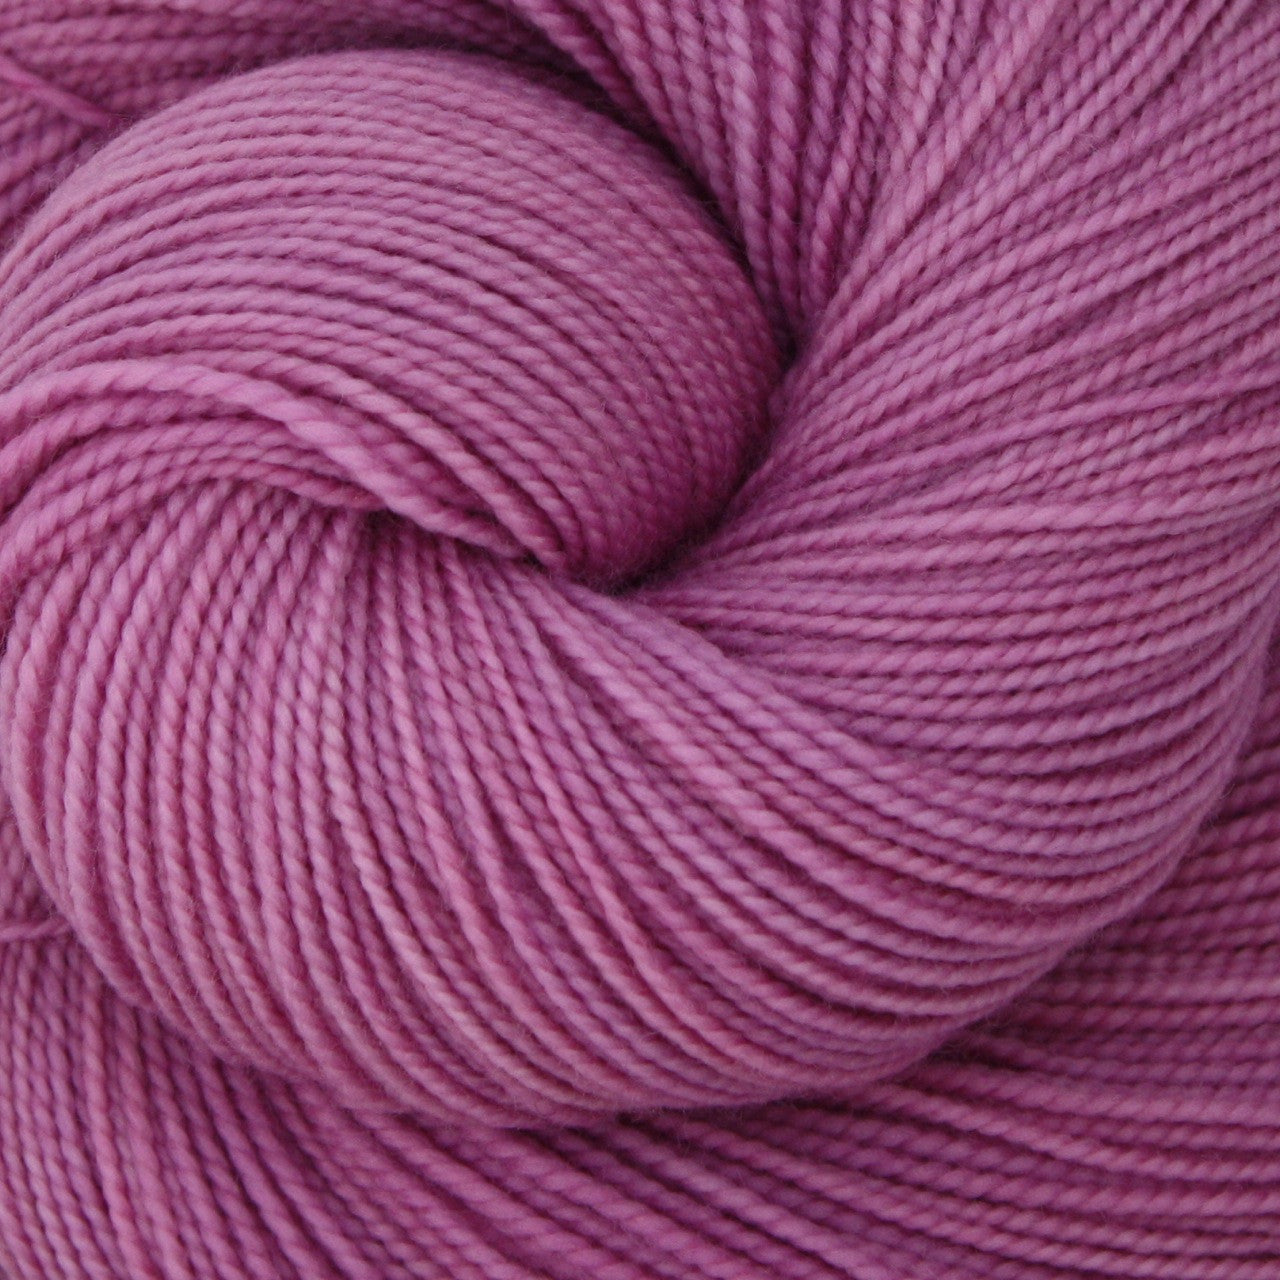 Colorway: Radiant Orchid | Dyed to Order Yarn